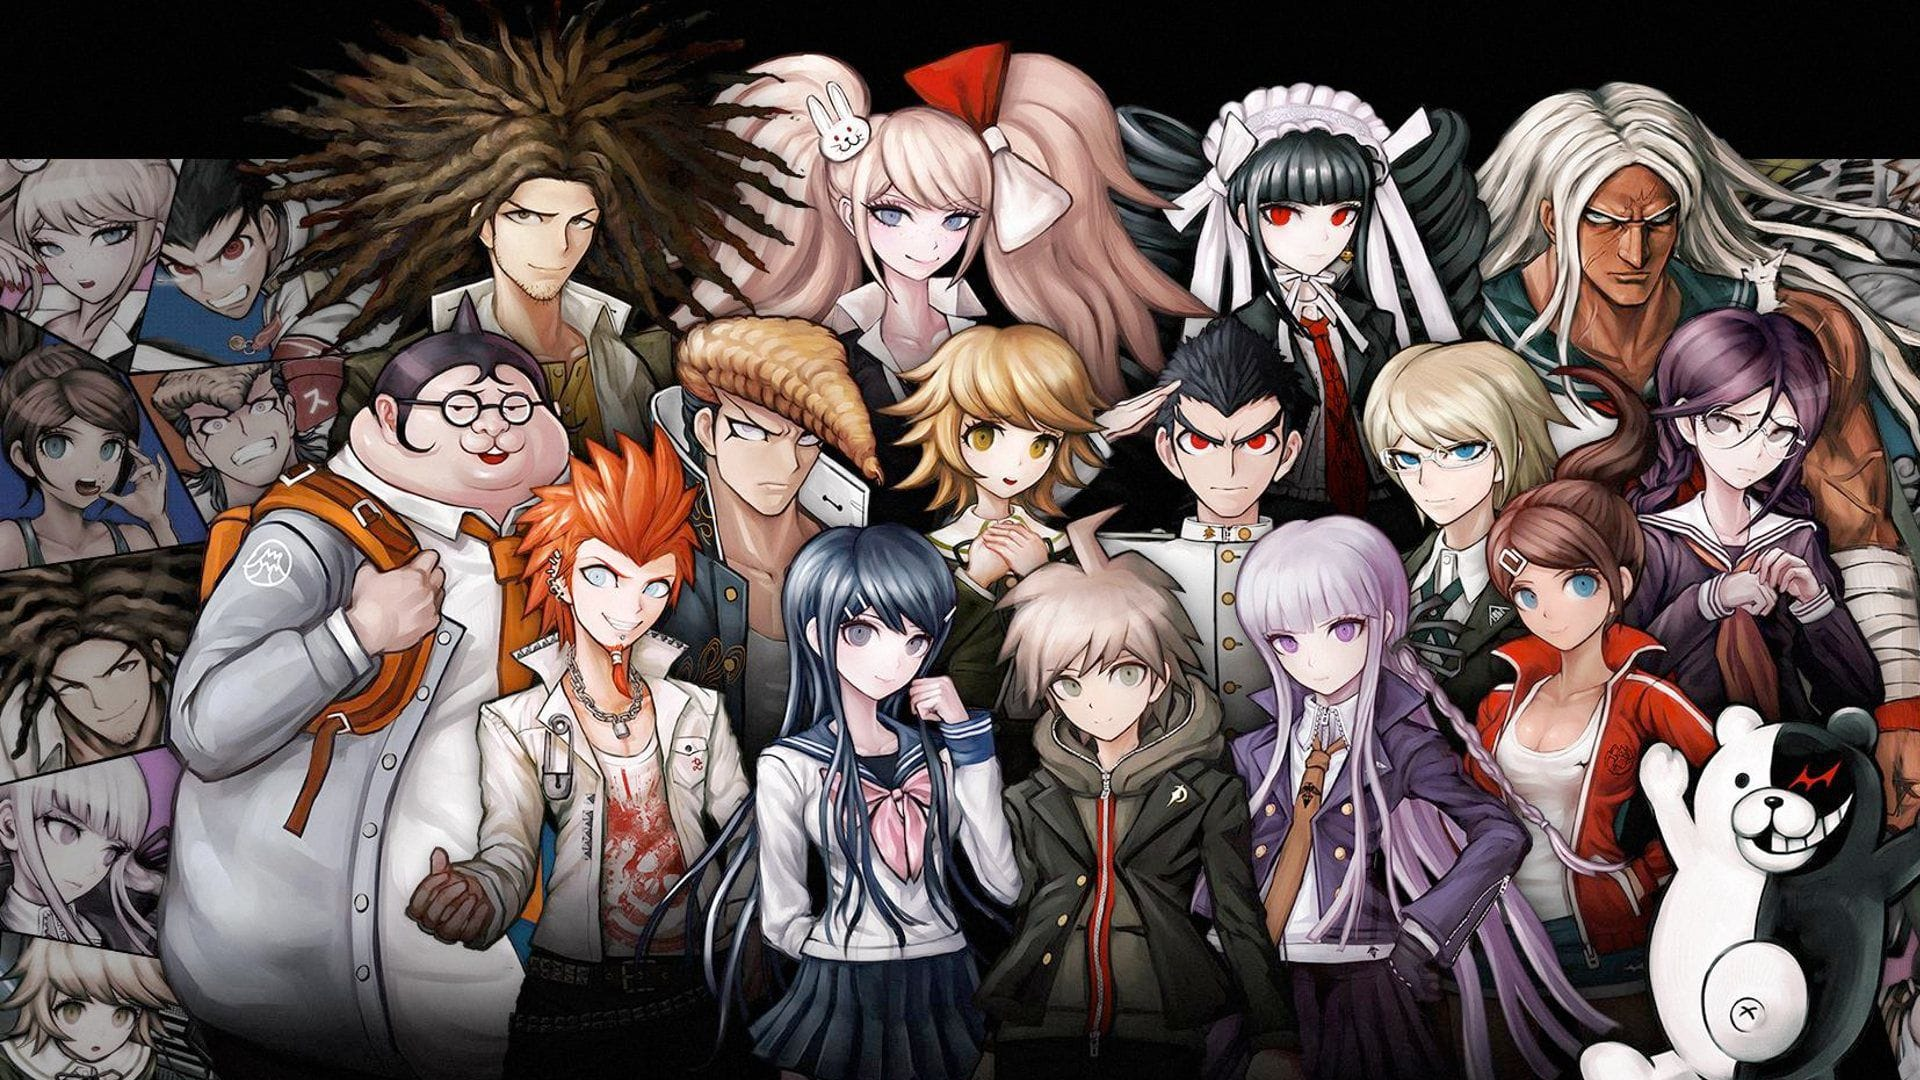 Danganronpa: Trigger Happy Havoc Full hd wallpapers